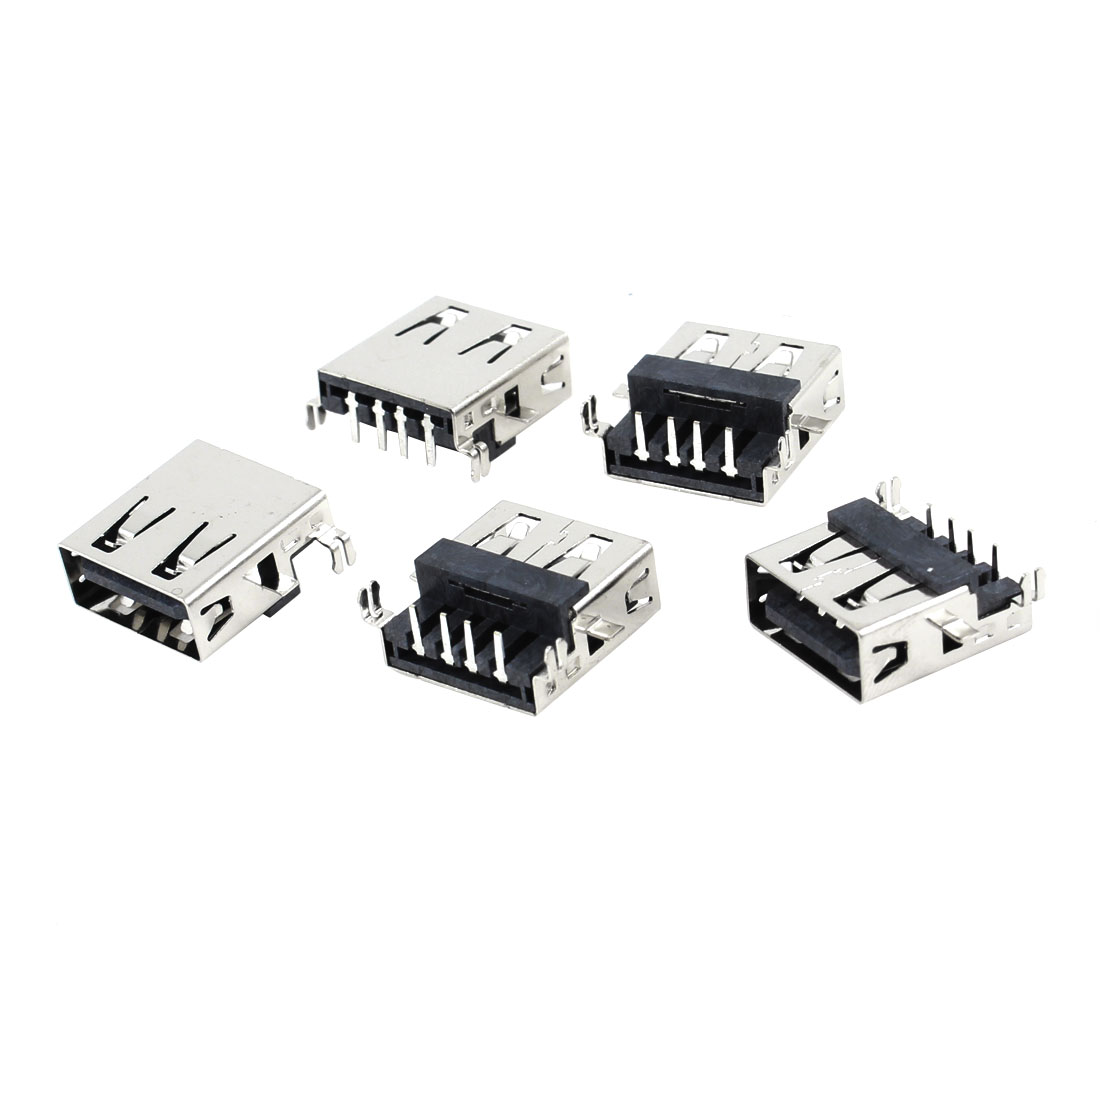 5 Pcs Single USB 2.0 Type A 90 Degree 4-Pin DIP Female Jack Socket